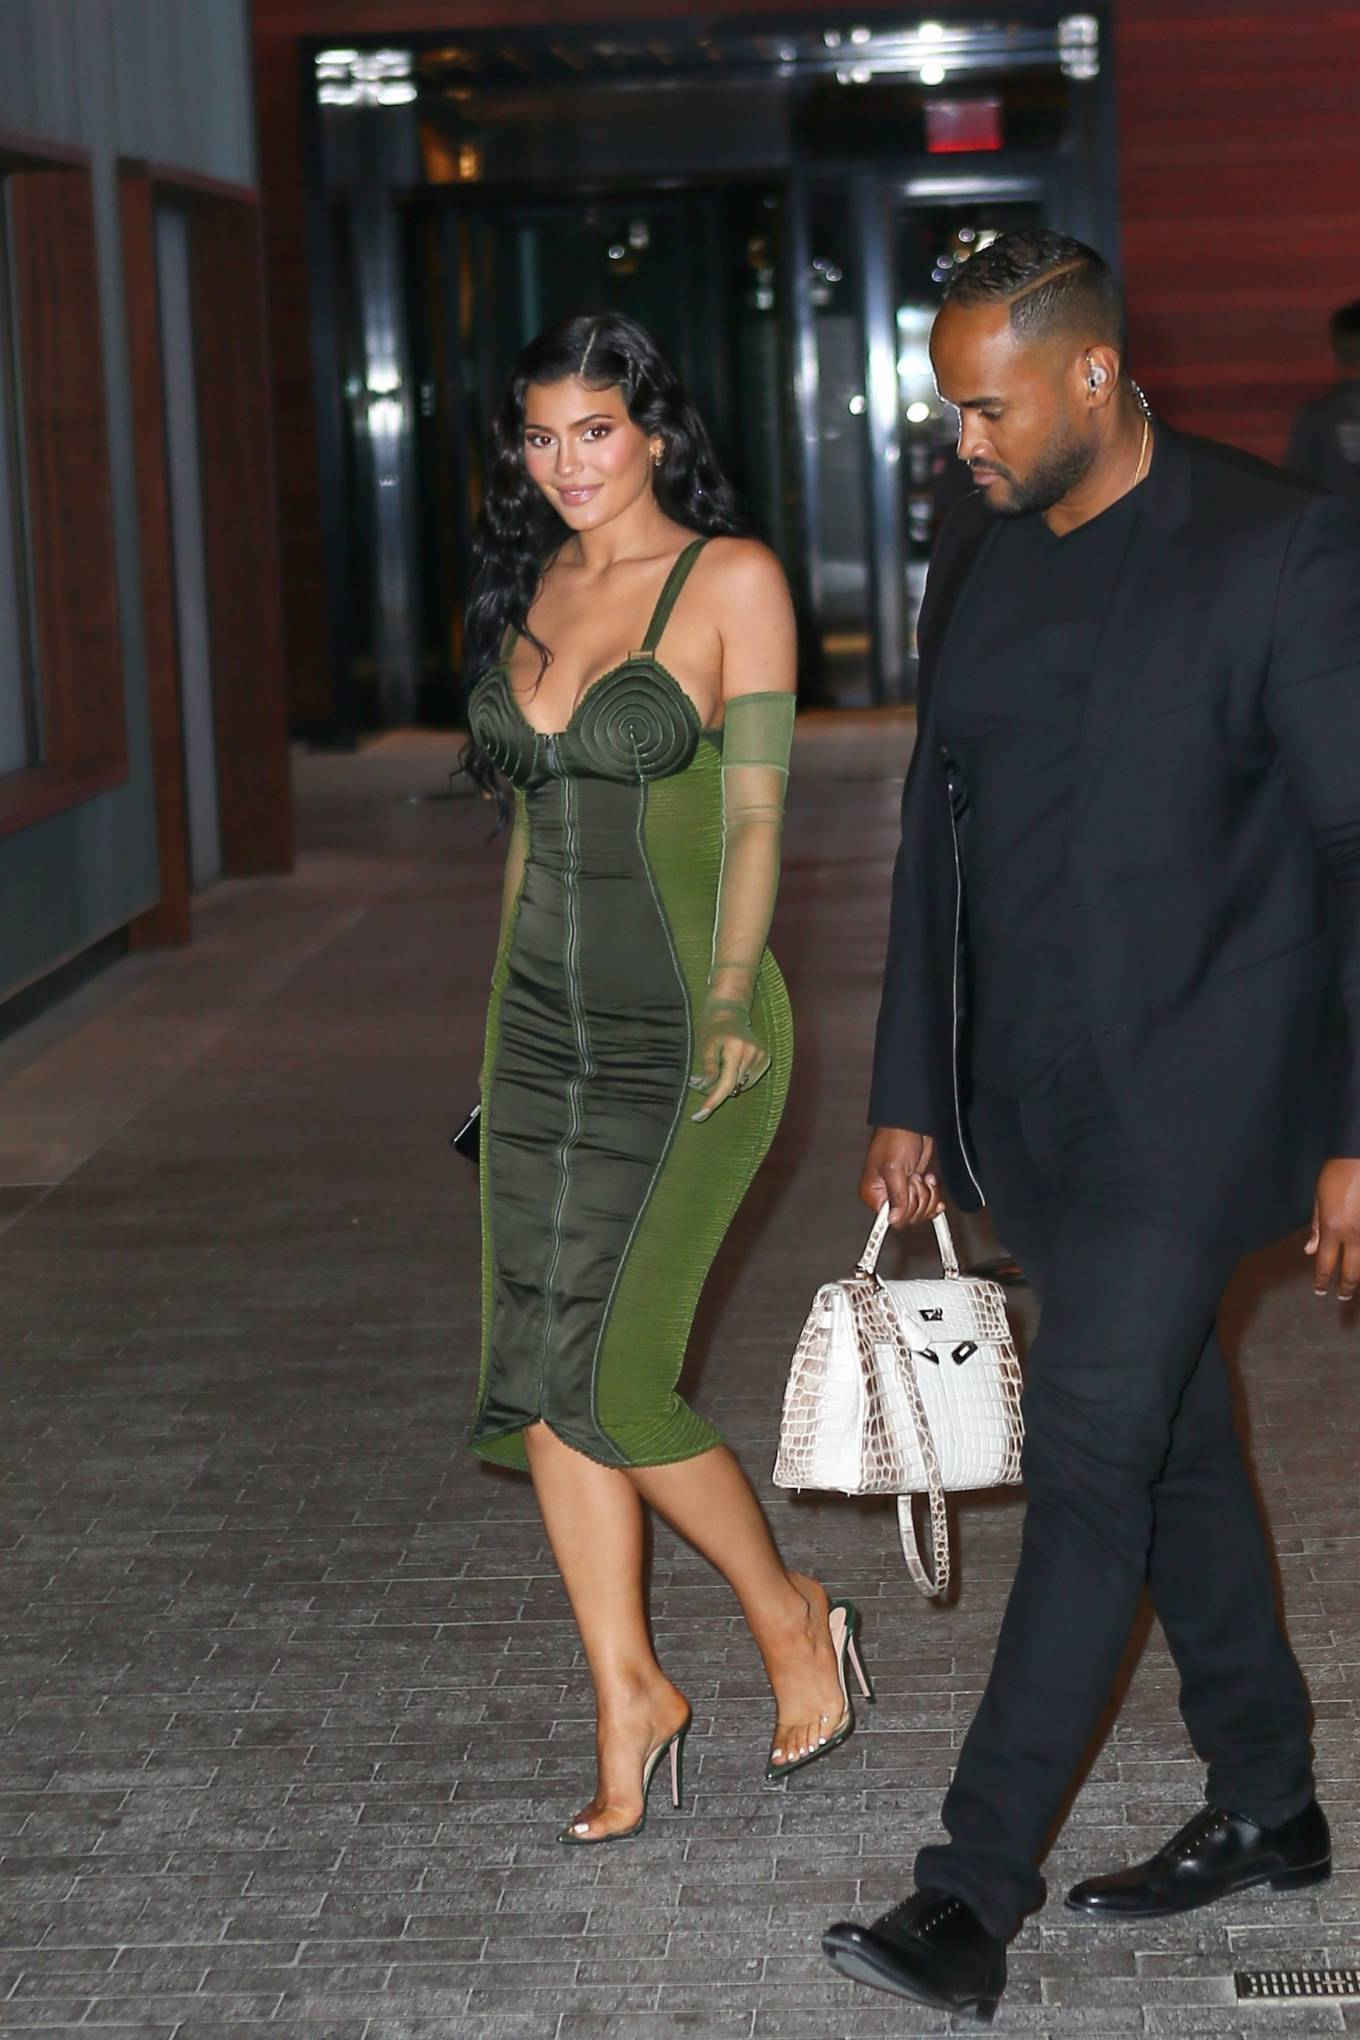 Kylie Jenner wearing pointed completely see-through sandals with high heel